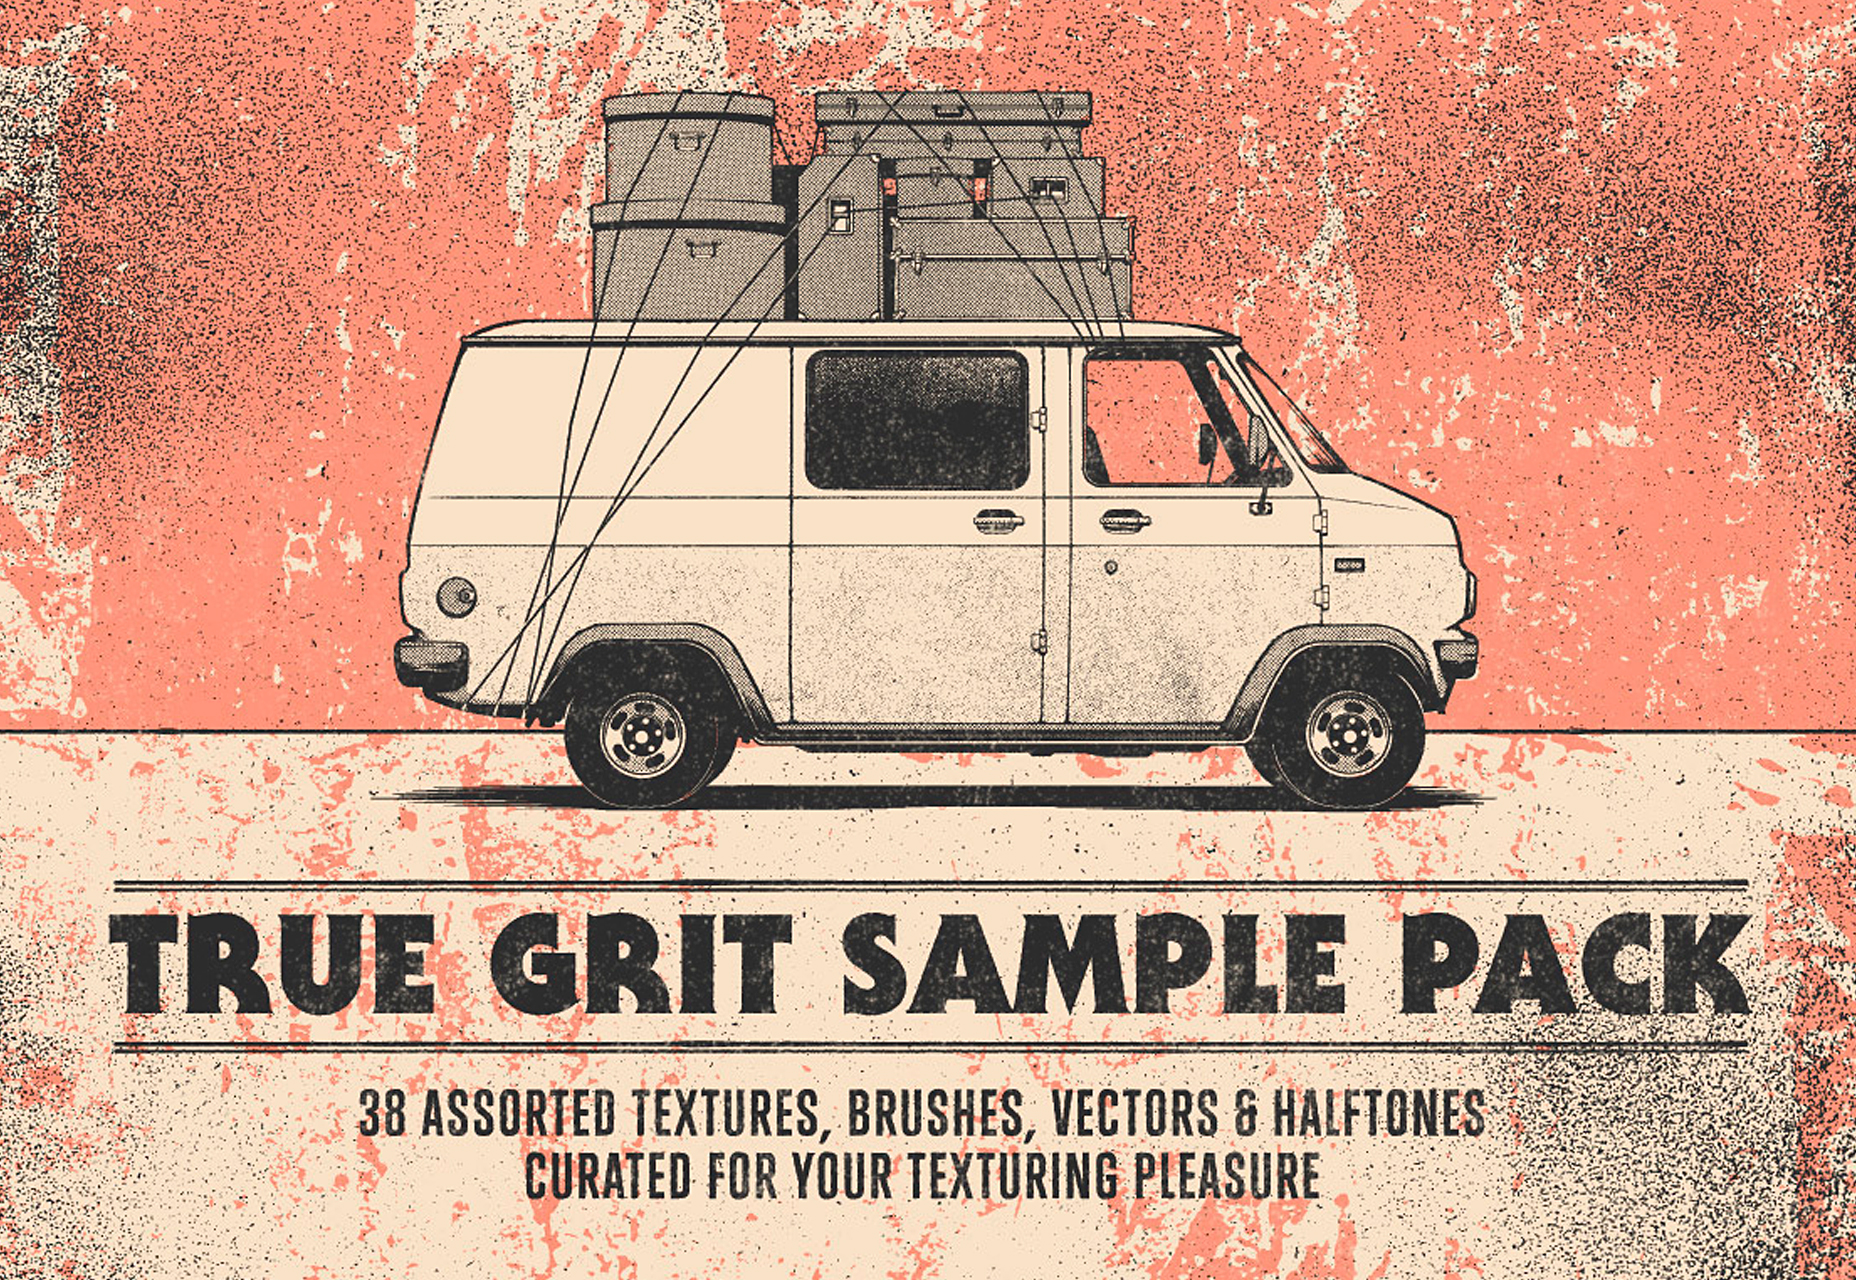 True Grit's Textures Sample Pack